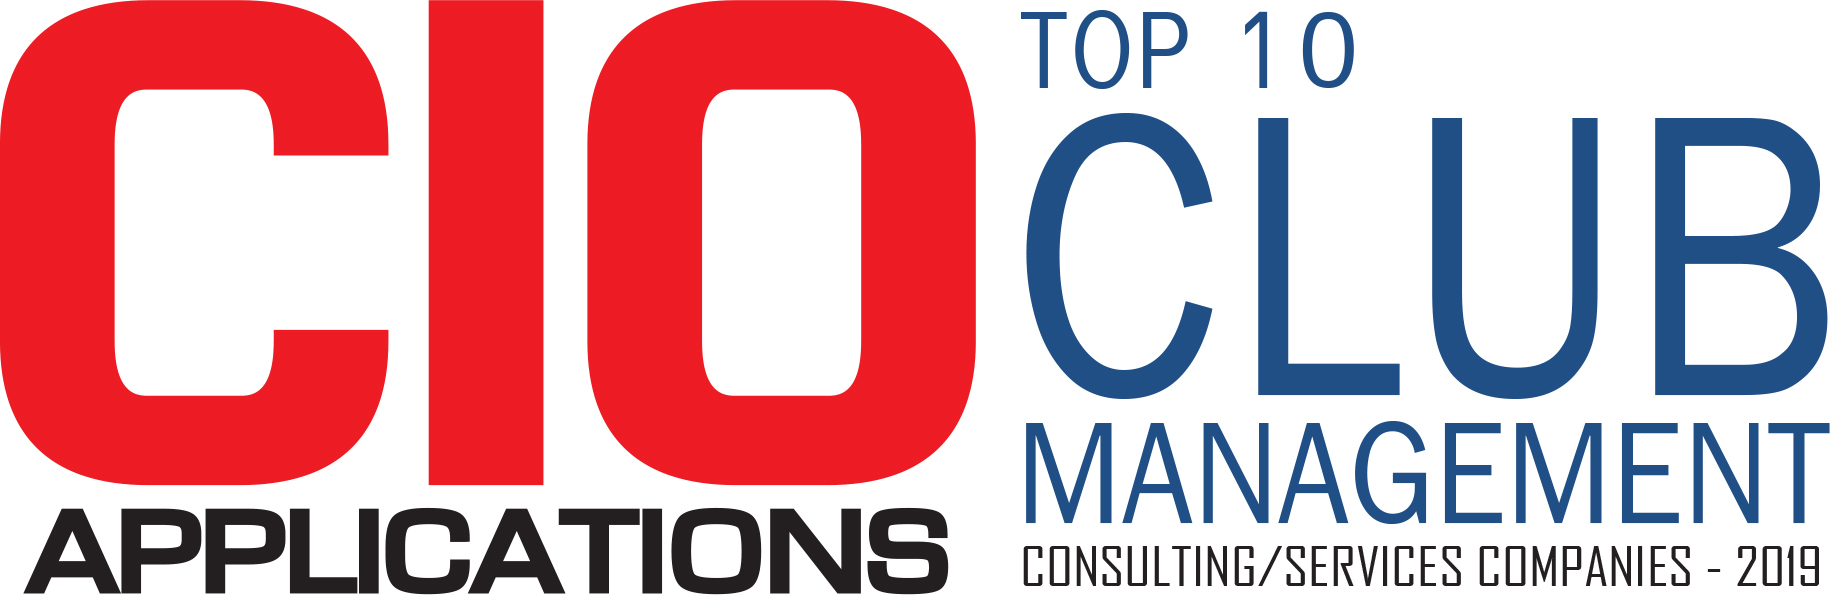 Top 10 Club Management Consulting/Service Companies - 2019